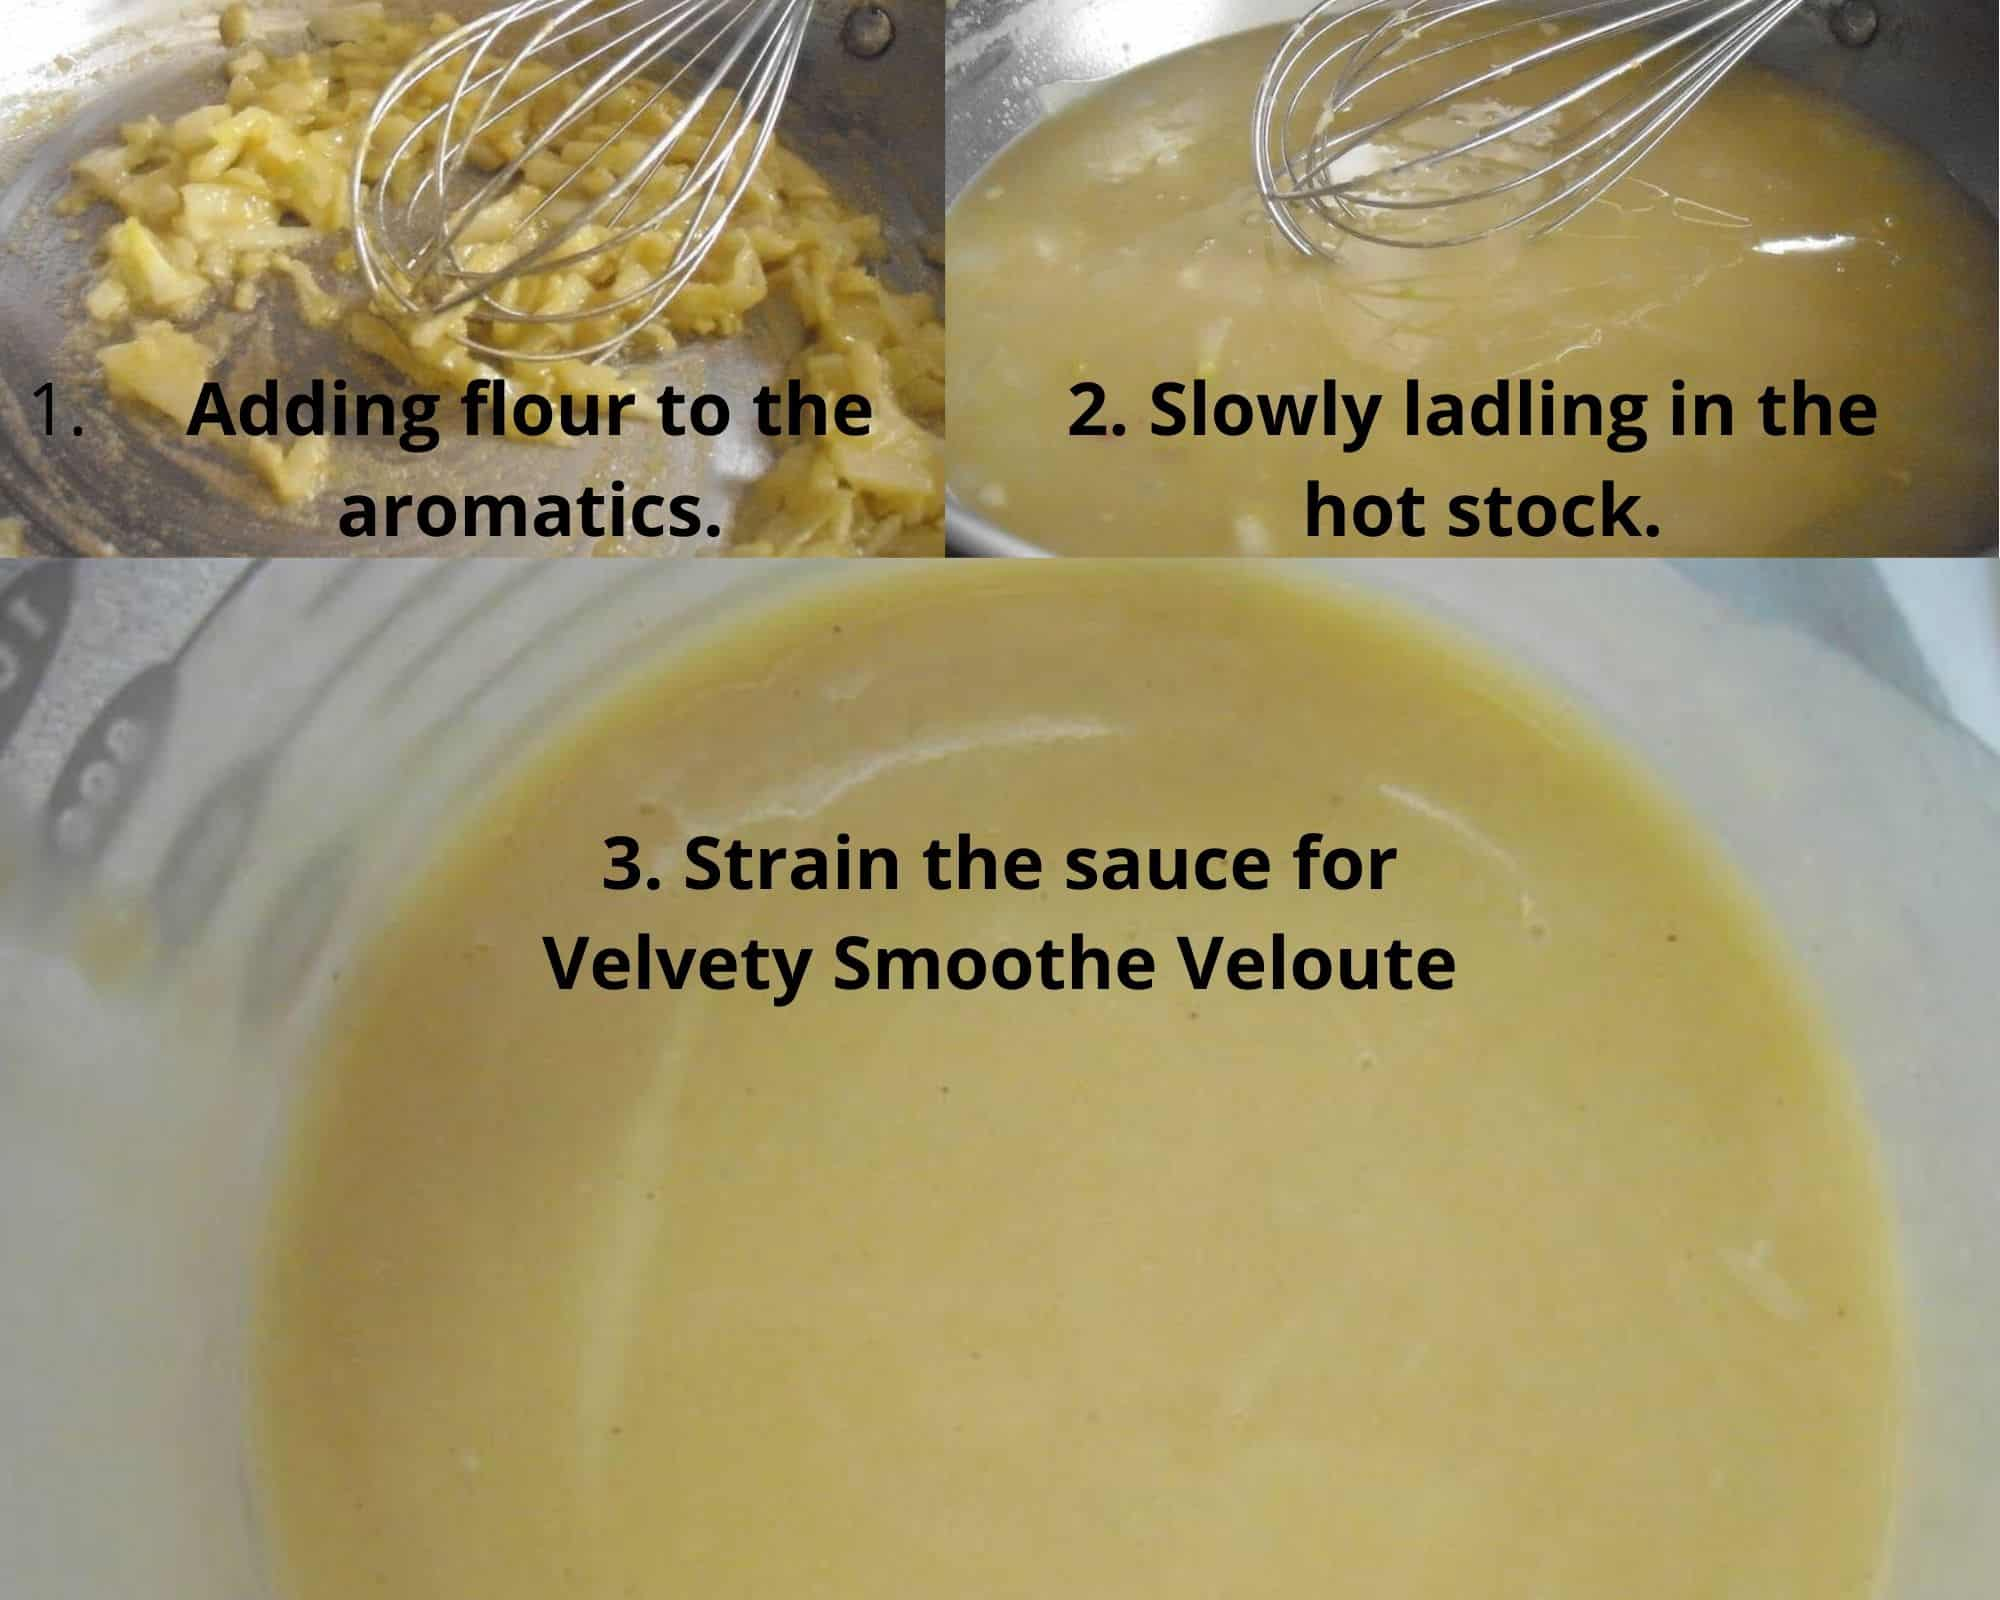 three basic steps to making veloute sauce